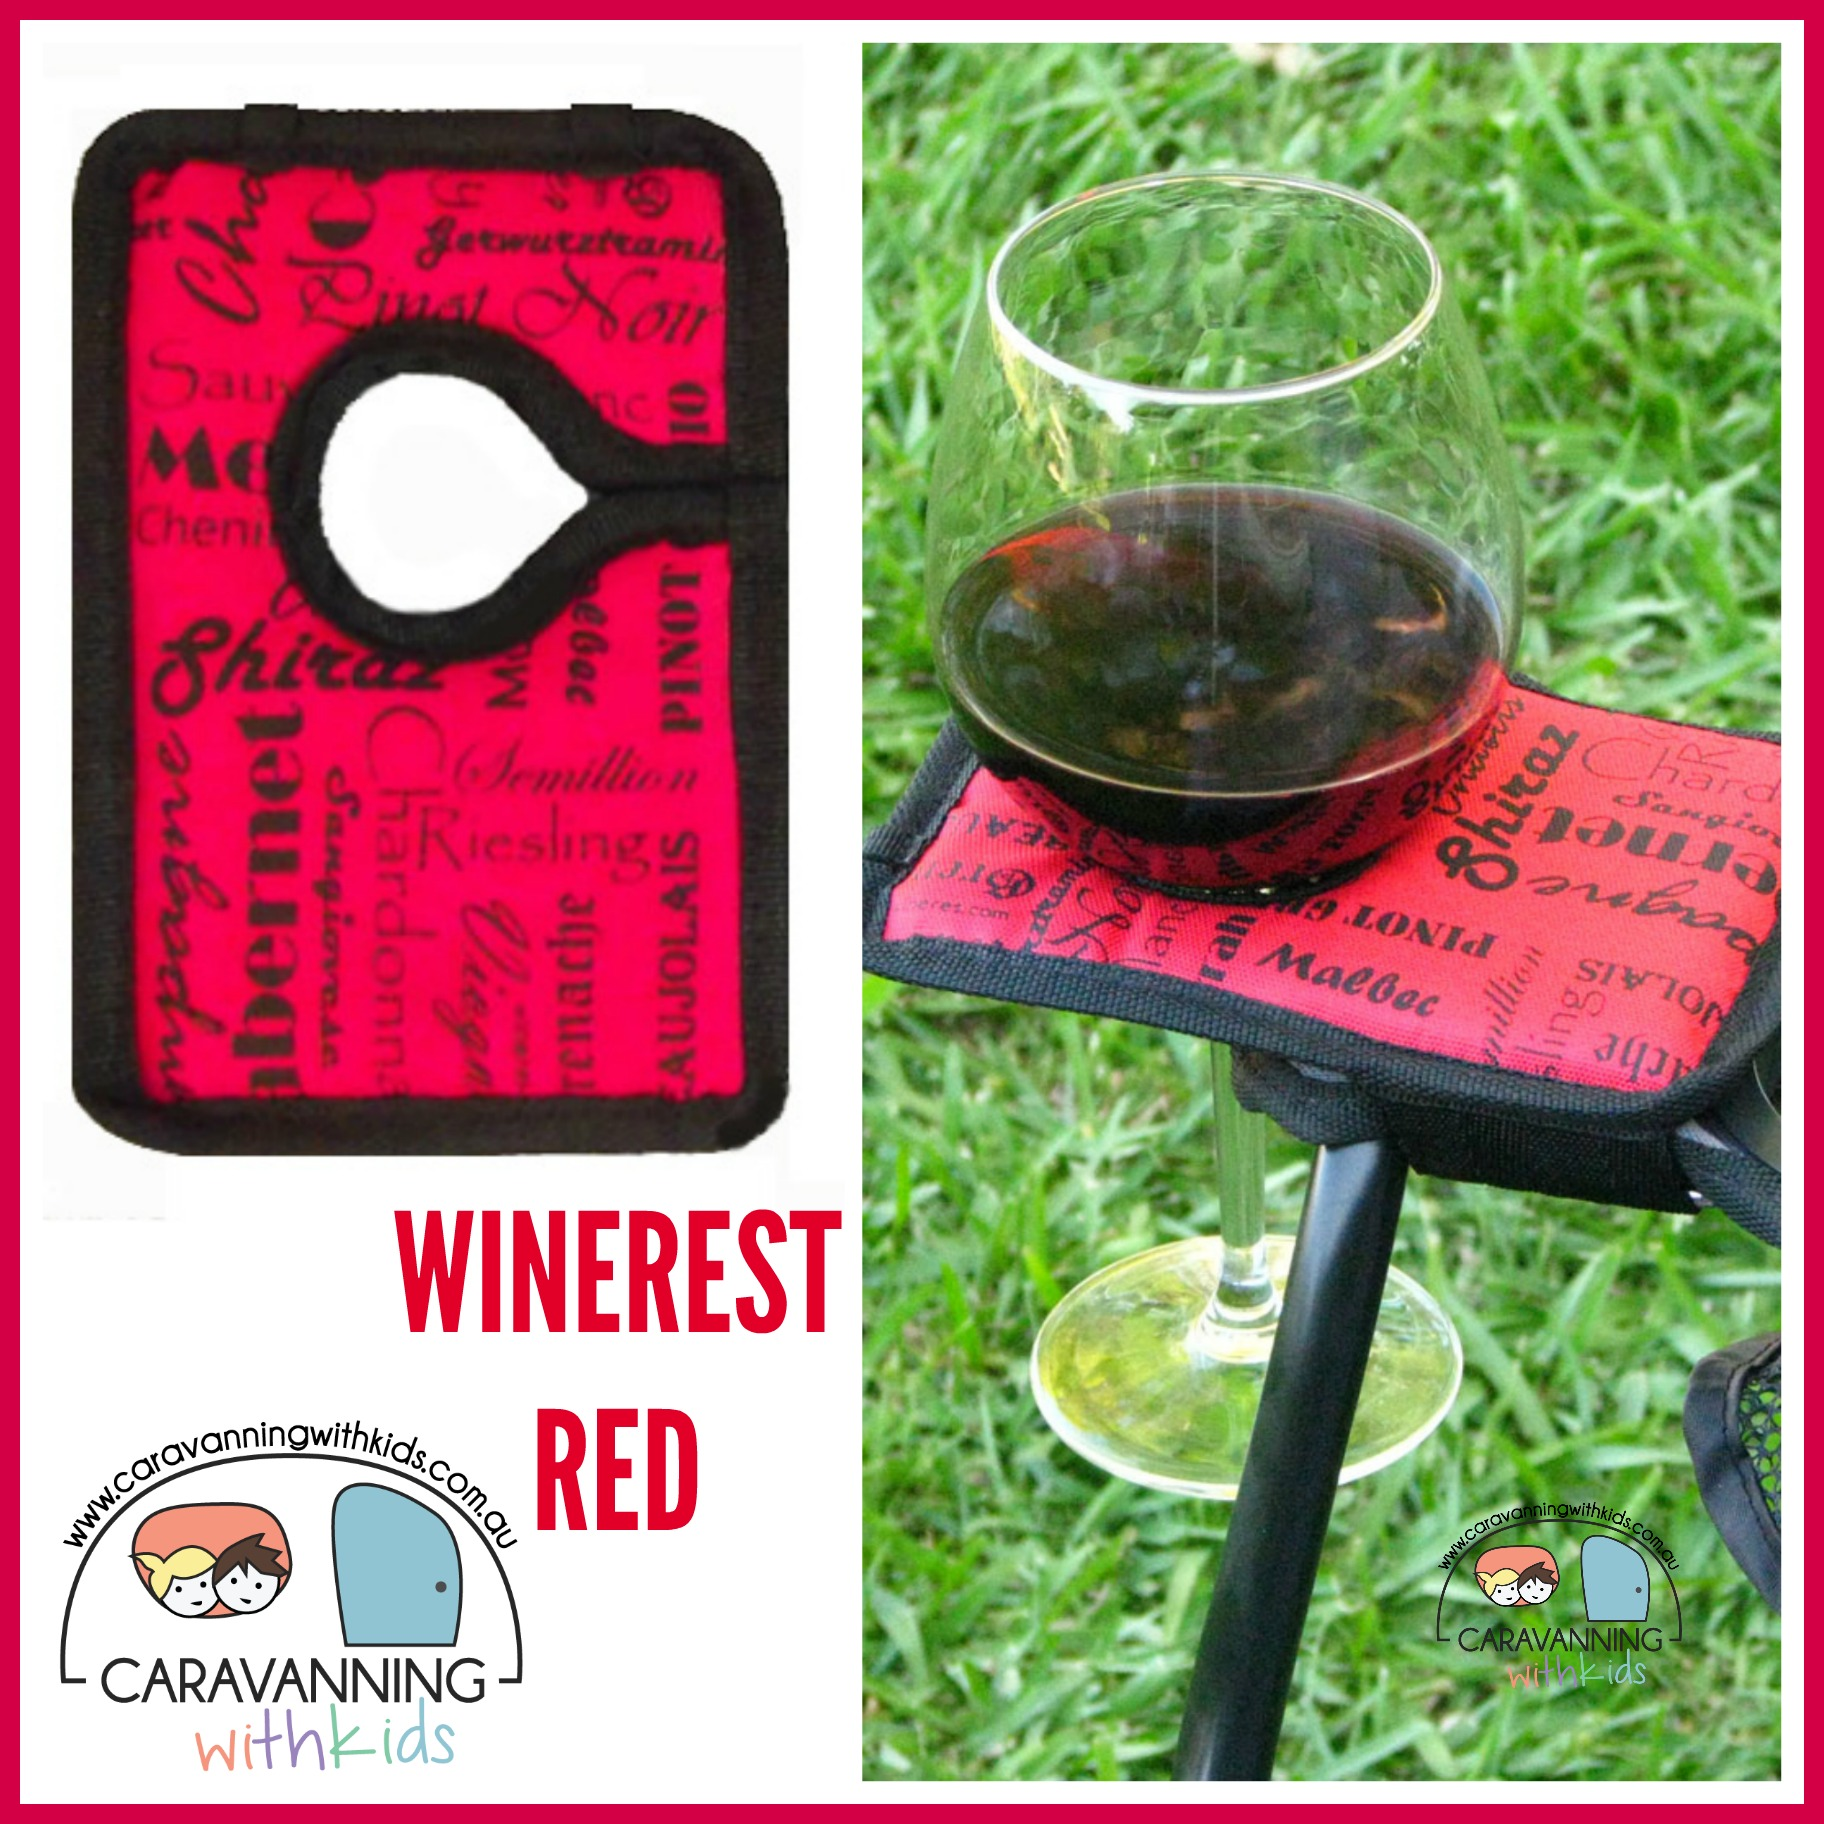 Winerest Camping Chair wine glass holder RED Travelling with Kids